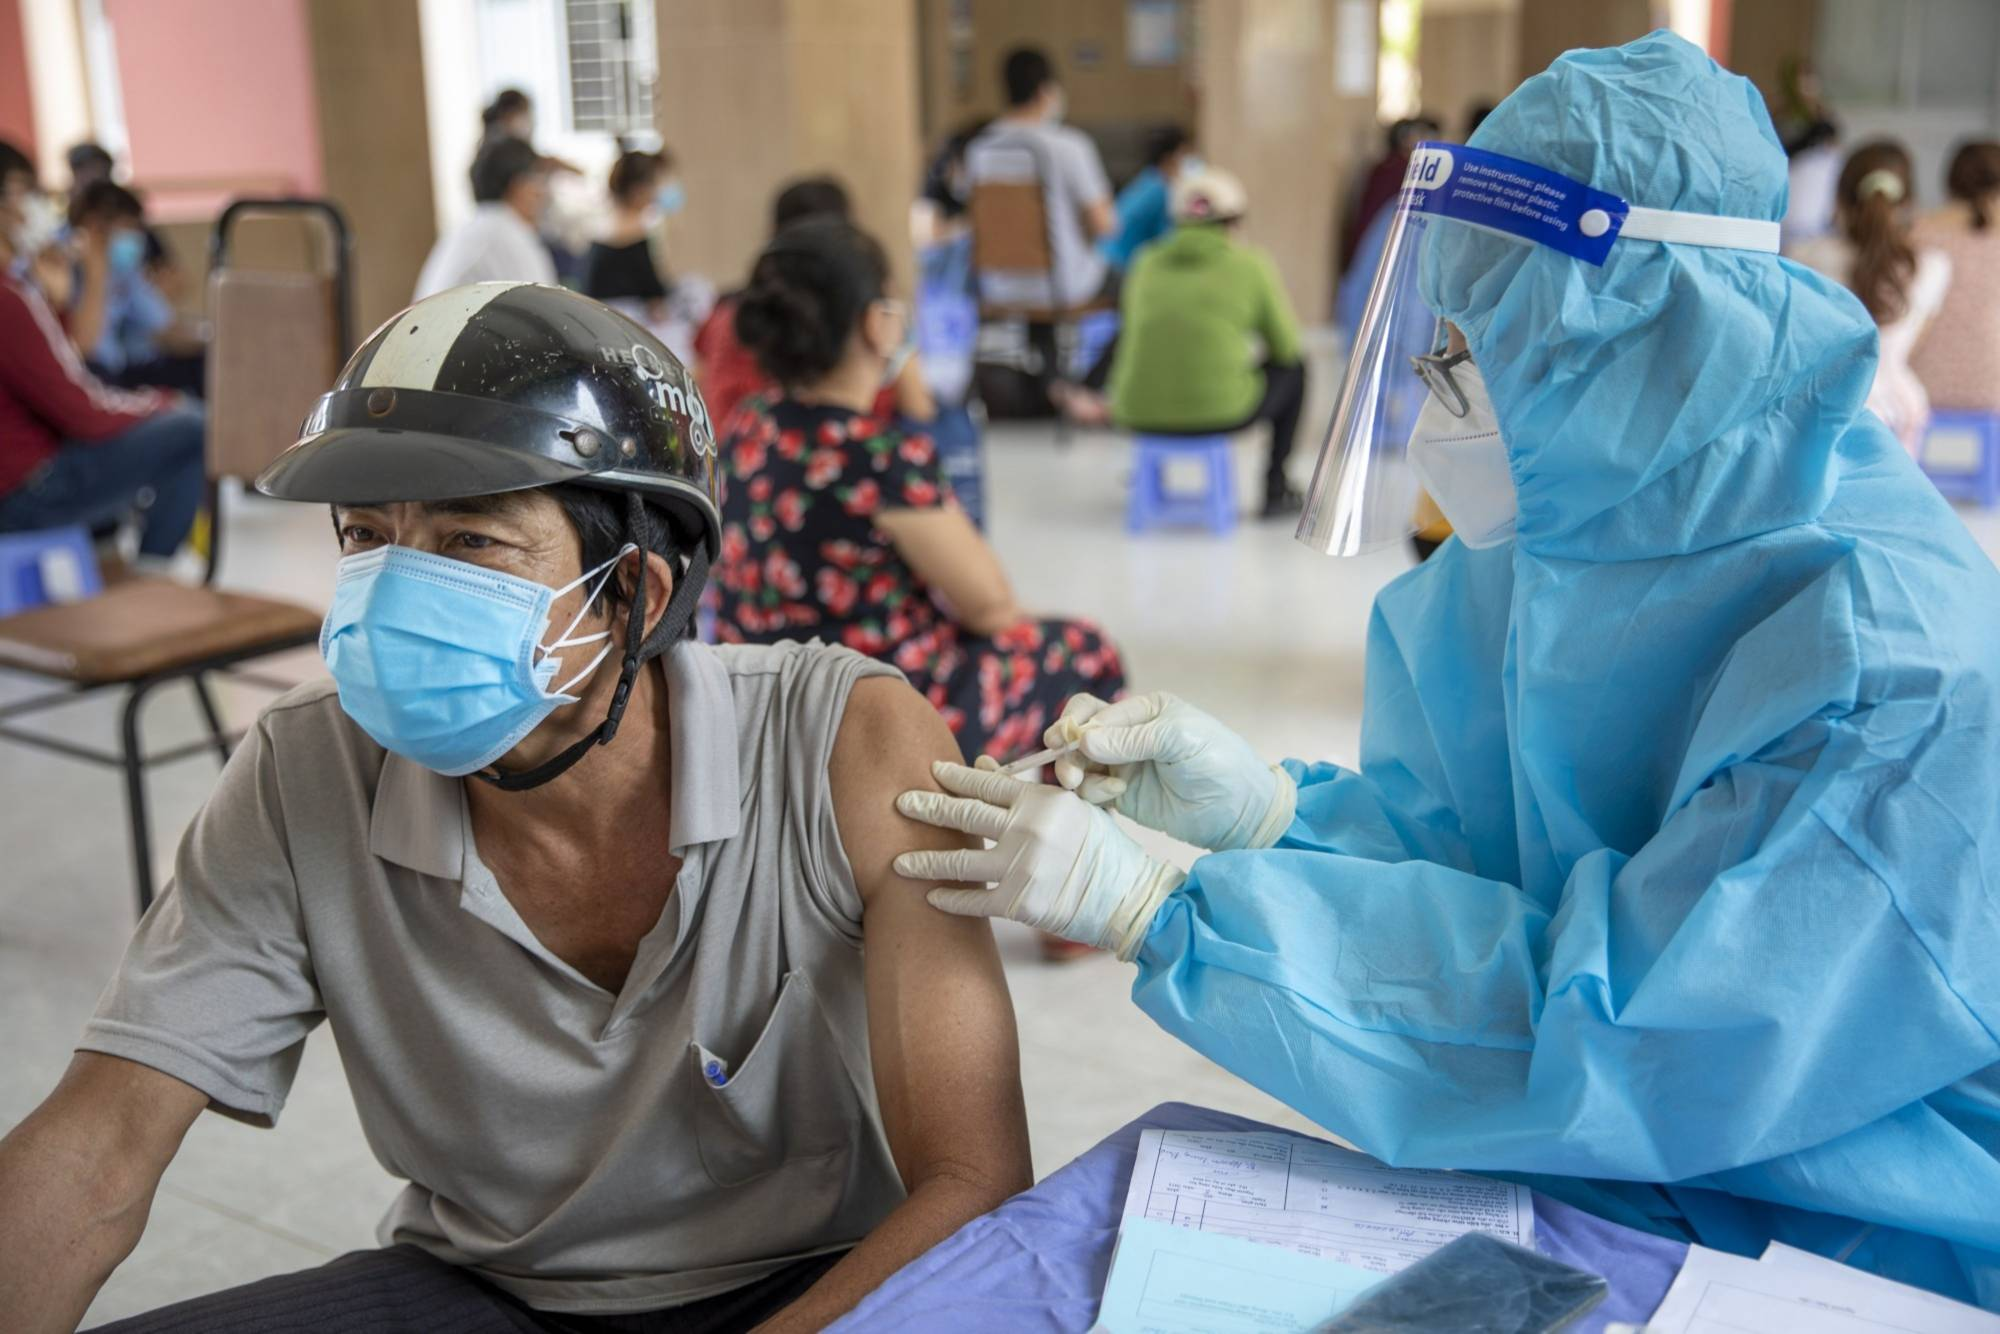 A vaccination center in Ho Chi Minh City, Vietnam, in August | BLOOMBERG